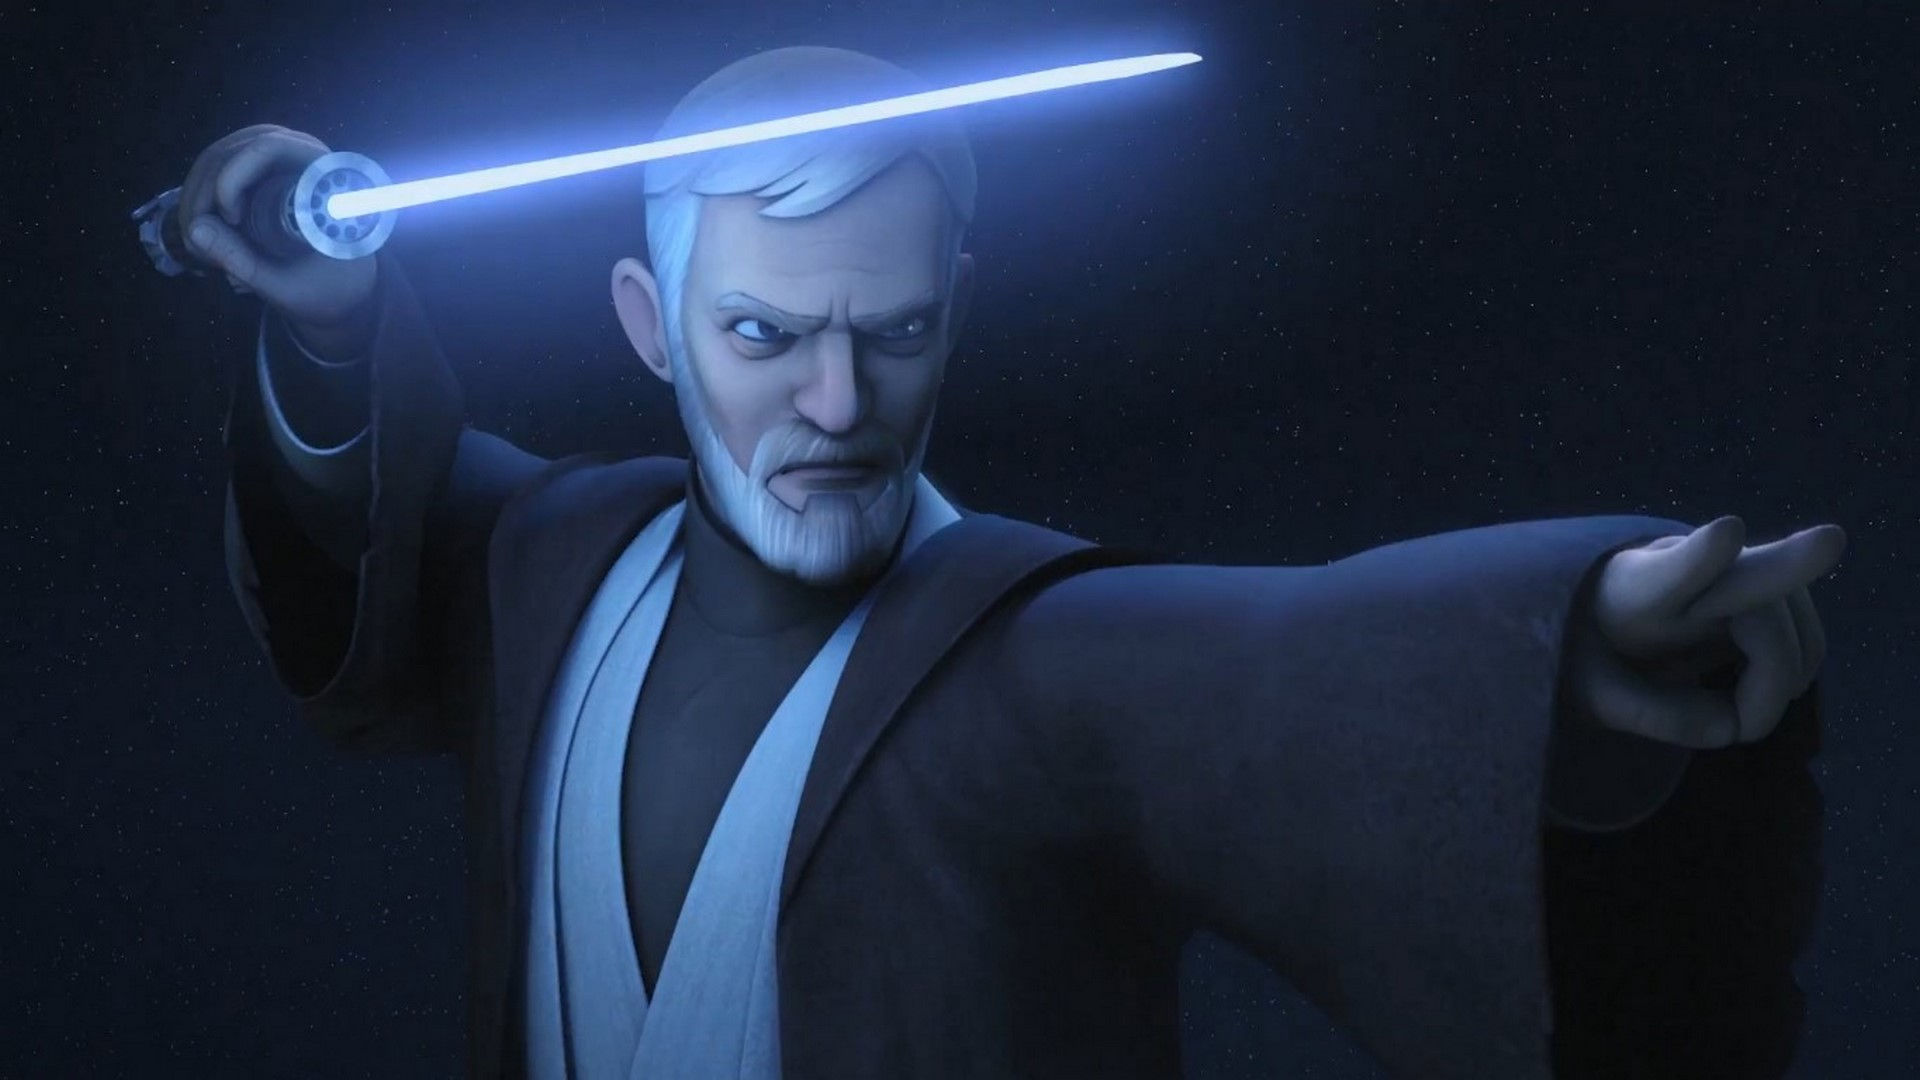 Obi Wan Kenobi in Star Wars Rebels